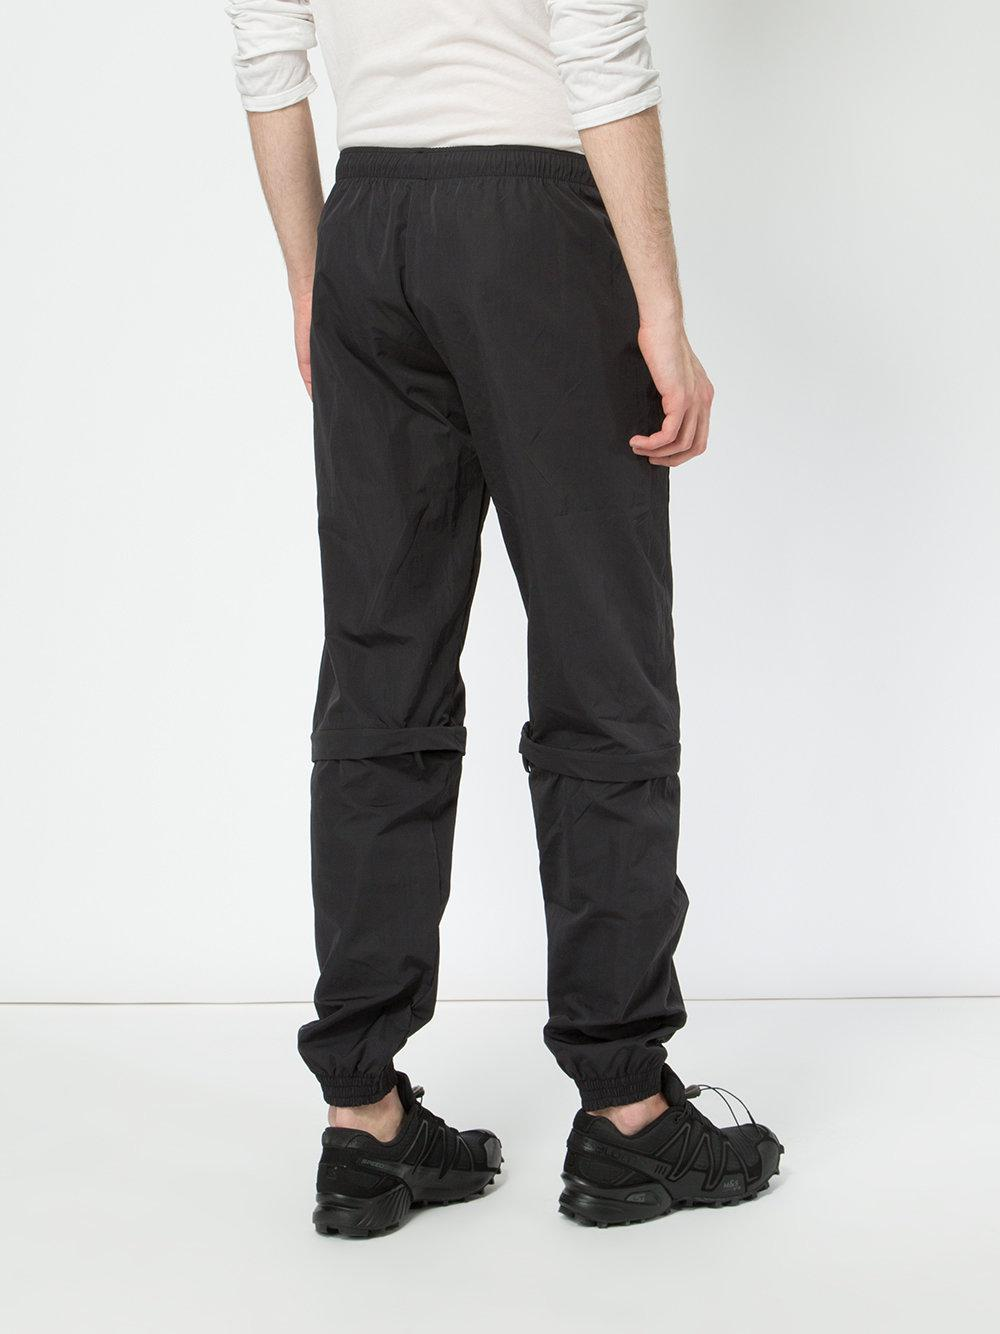 Cottweiler Synthetic Elasticated Track Pants in Black for Men